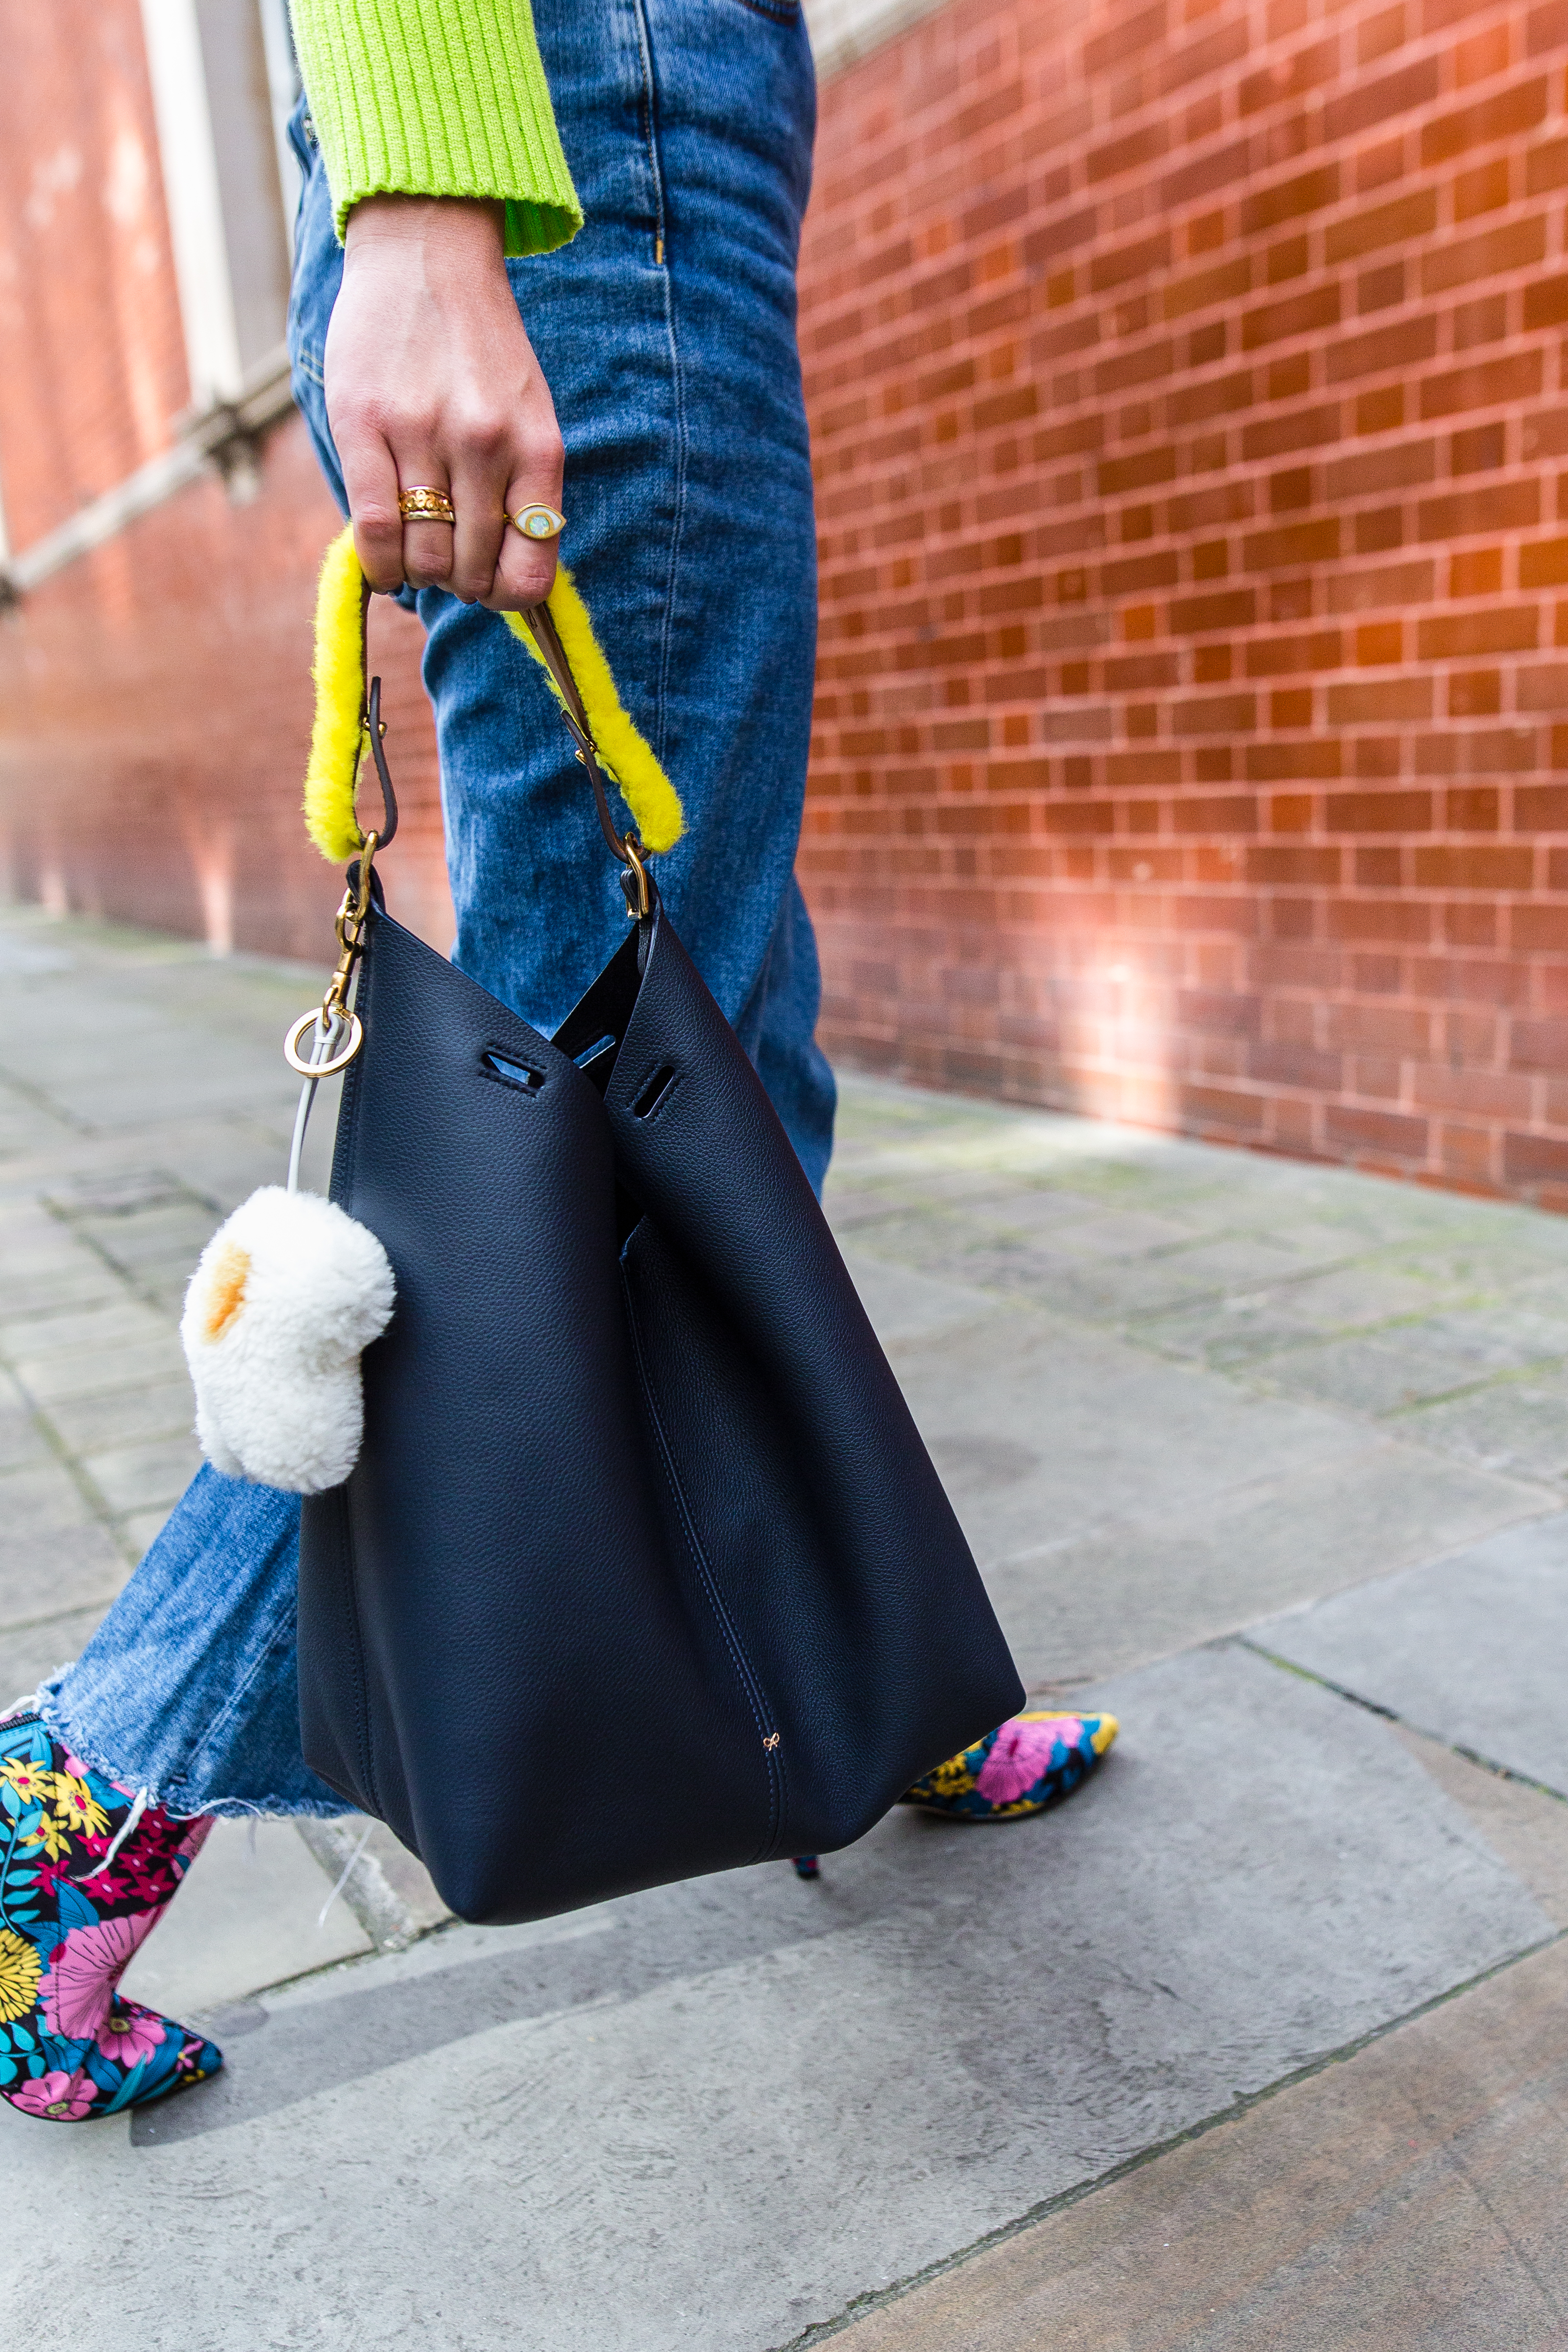 MEGAN ELLABY HOW TO STYLE ANYA HINDMARCH